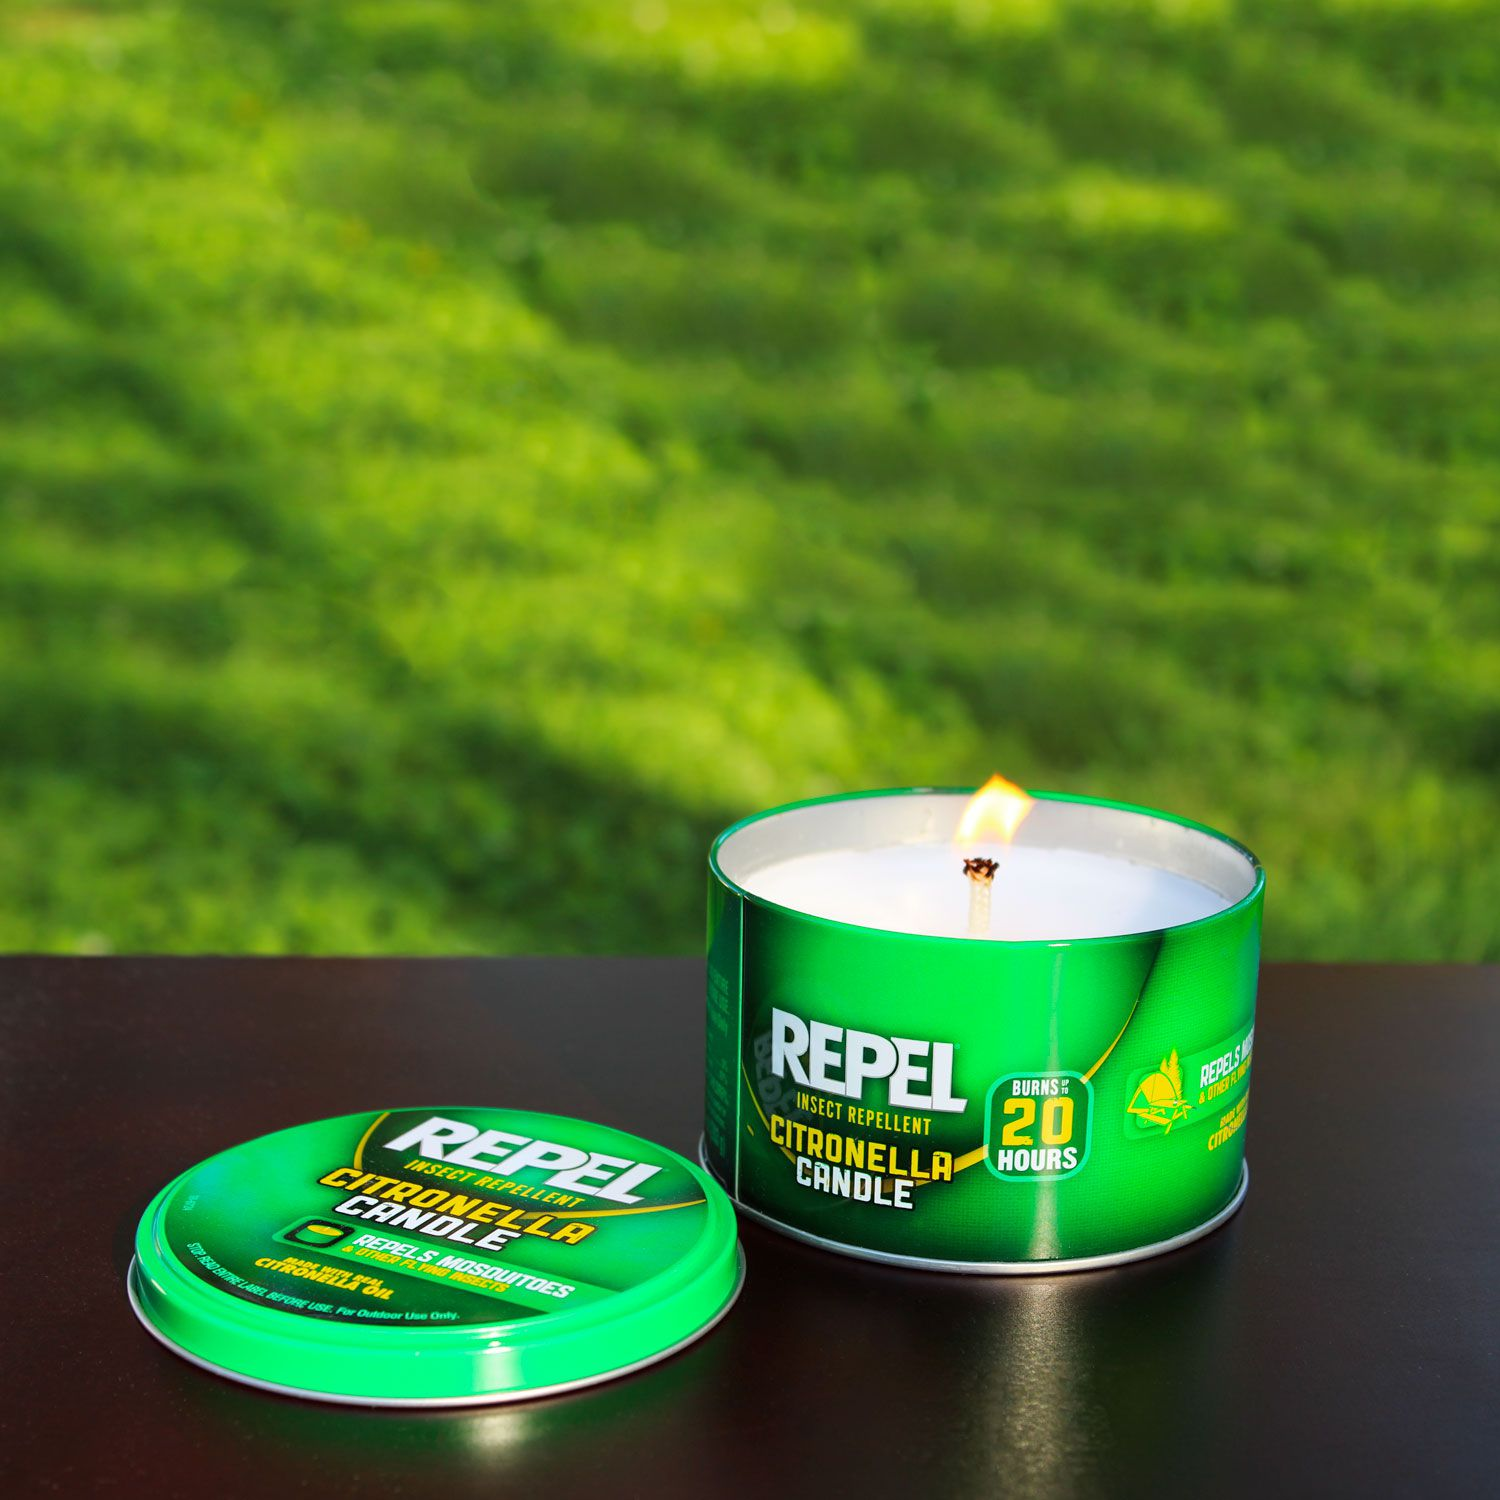 Repel Citronella Candle Review Powerful Insect Repellent Great Price